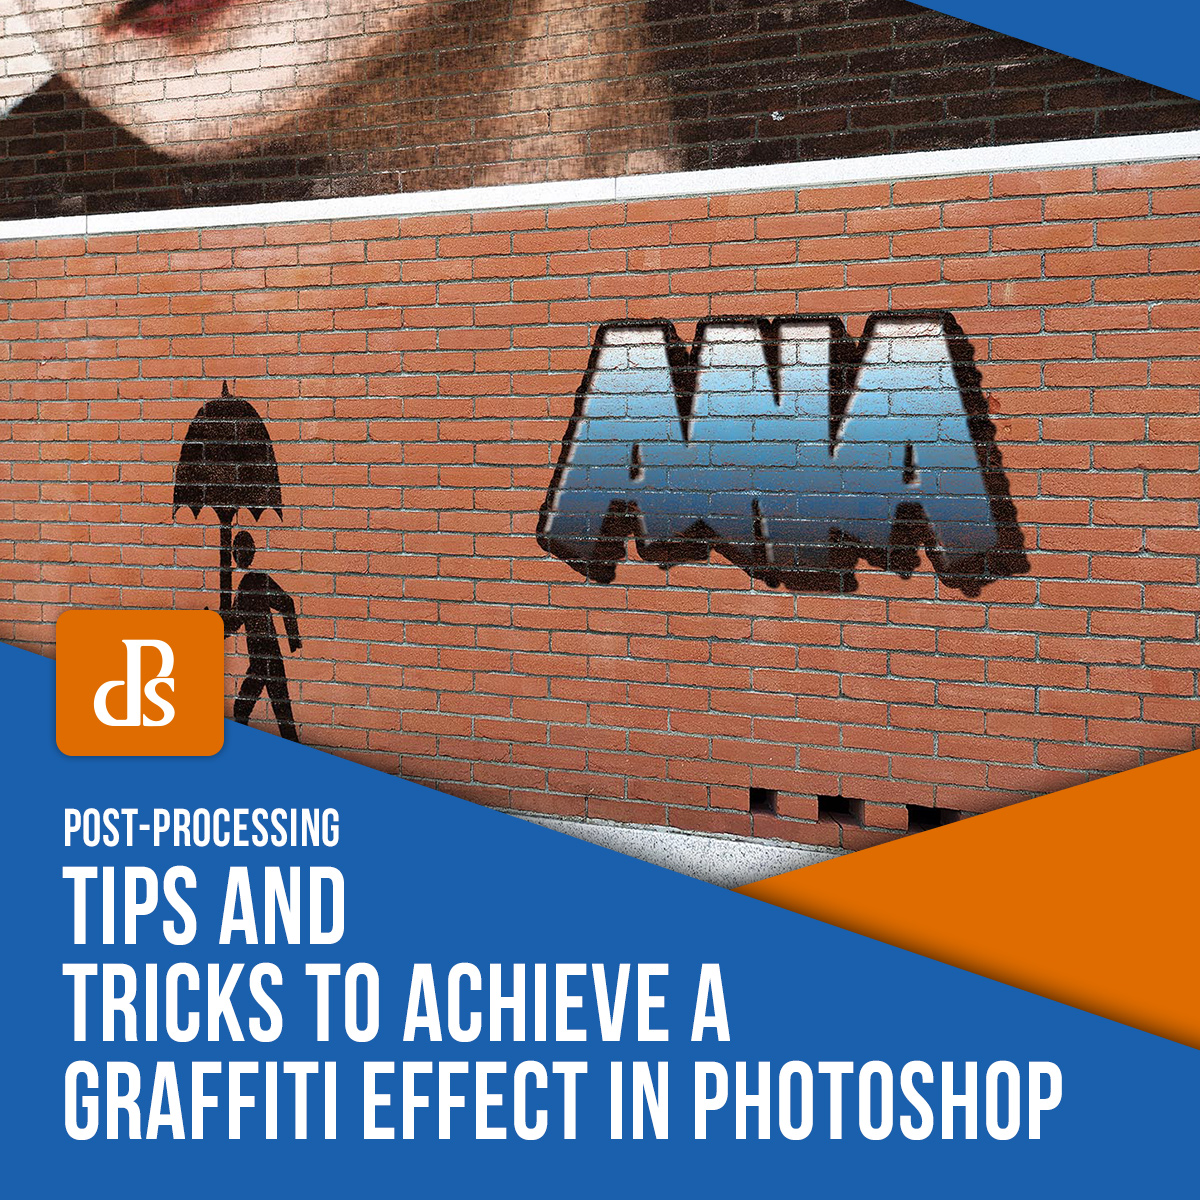 tips for creating a graffiti effect in Photoshop